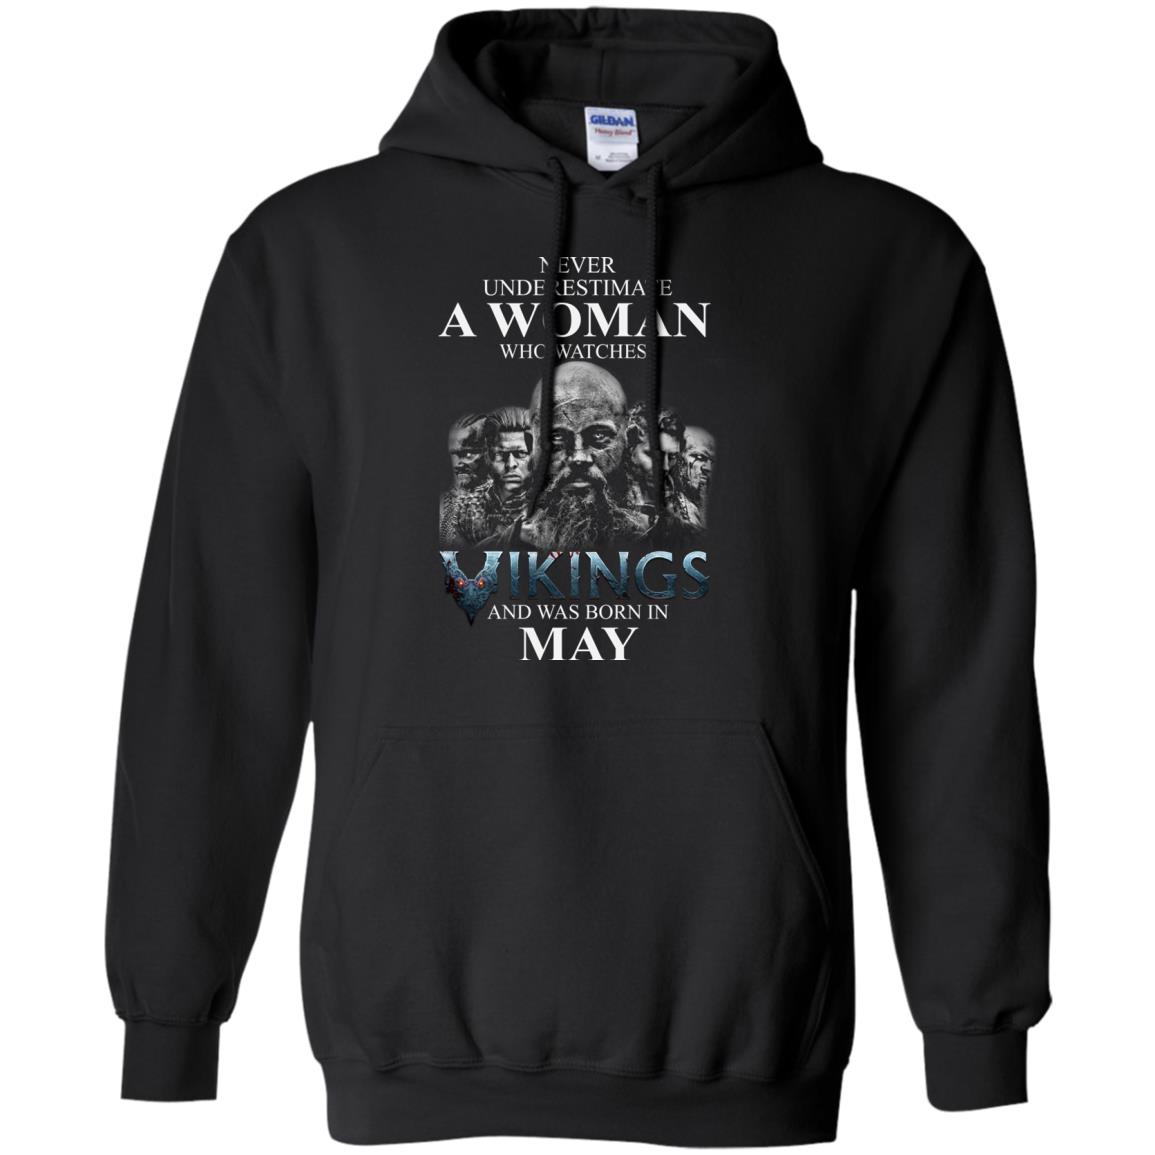 image 1307 - Never Underestimate A woman who watches Vikings and was born in May shirt